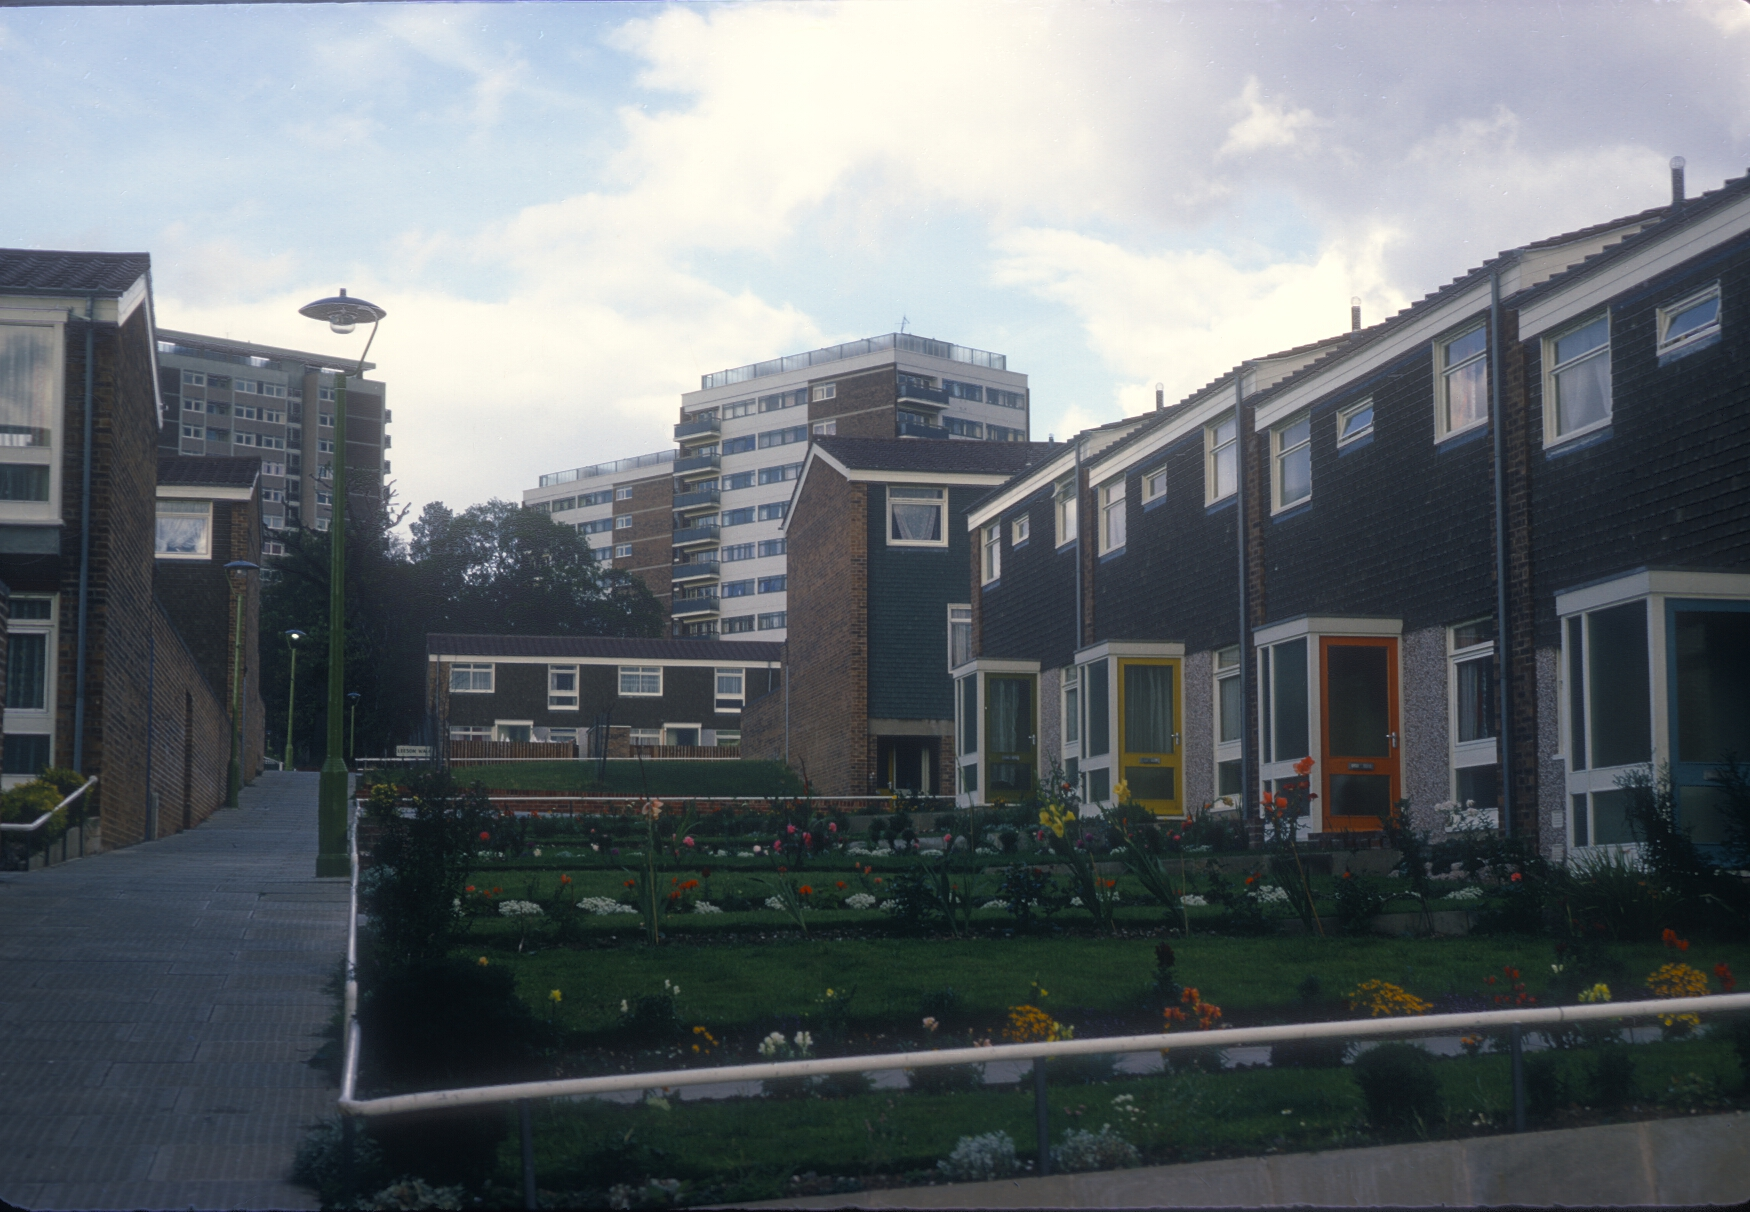 Harborne Metchley Grange Municipal Estate, Bantock Walk. 6th September 1967